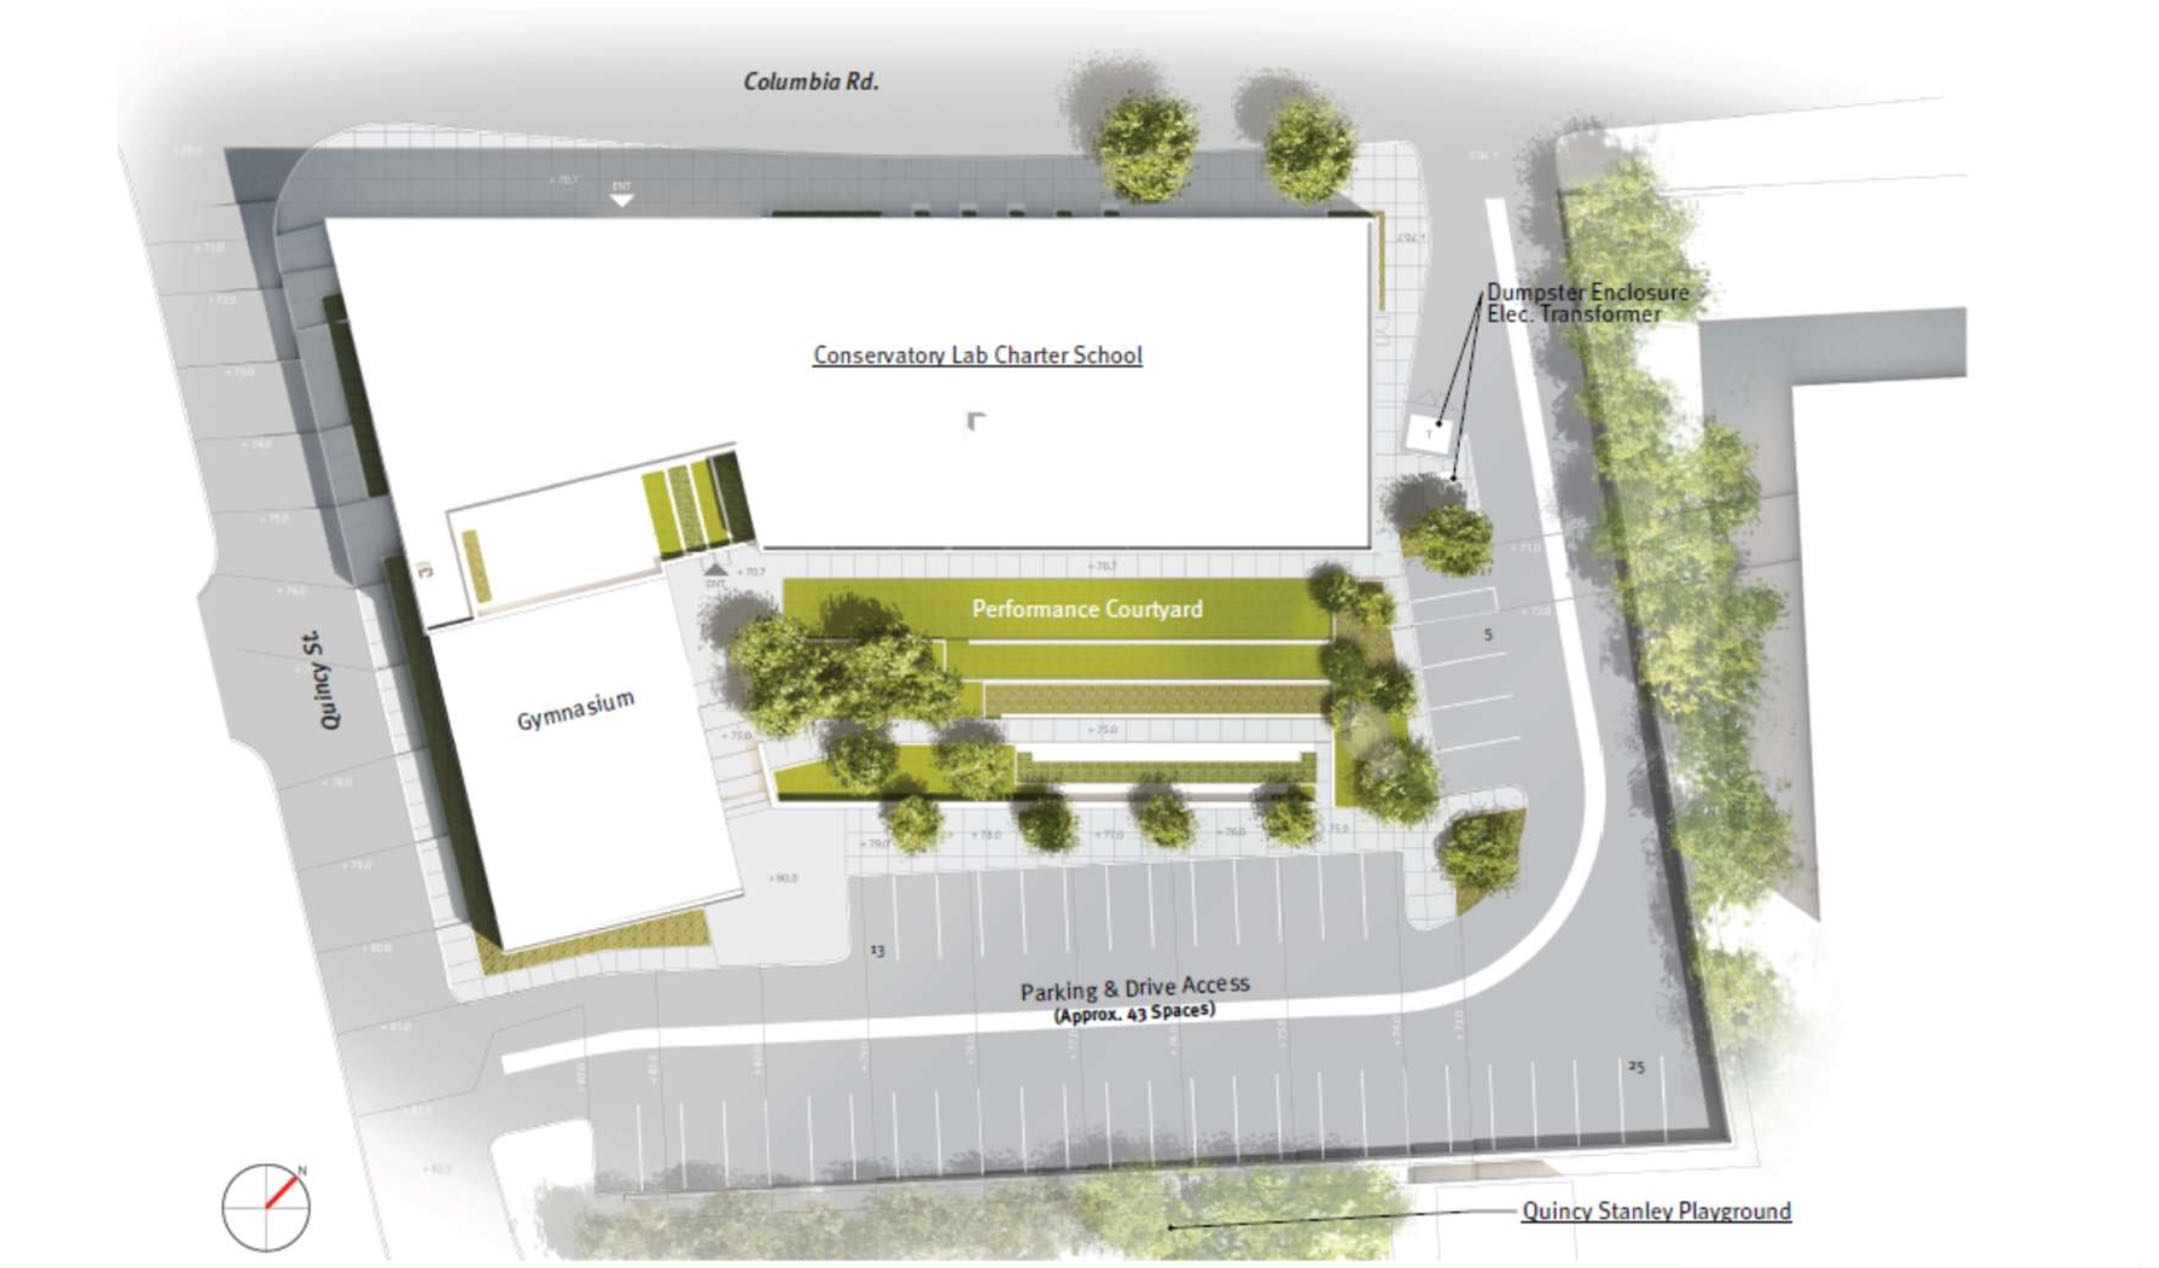 Conservatory lab charter school 395 columbia road dorchester boston proposed academic building